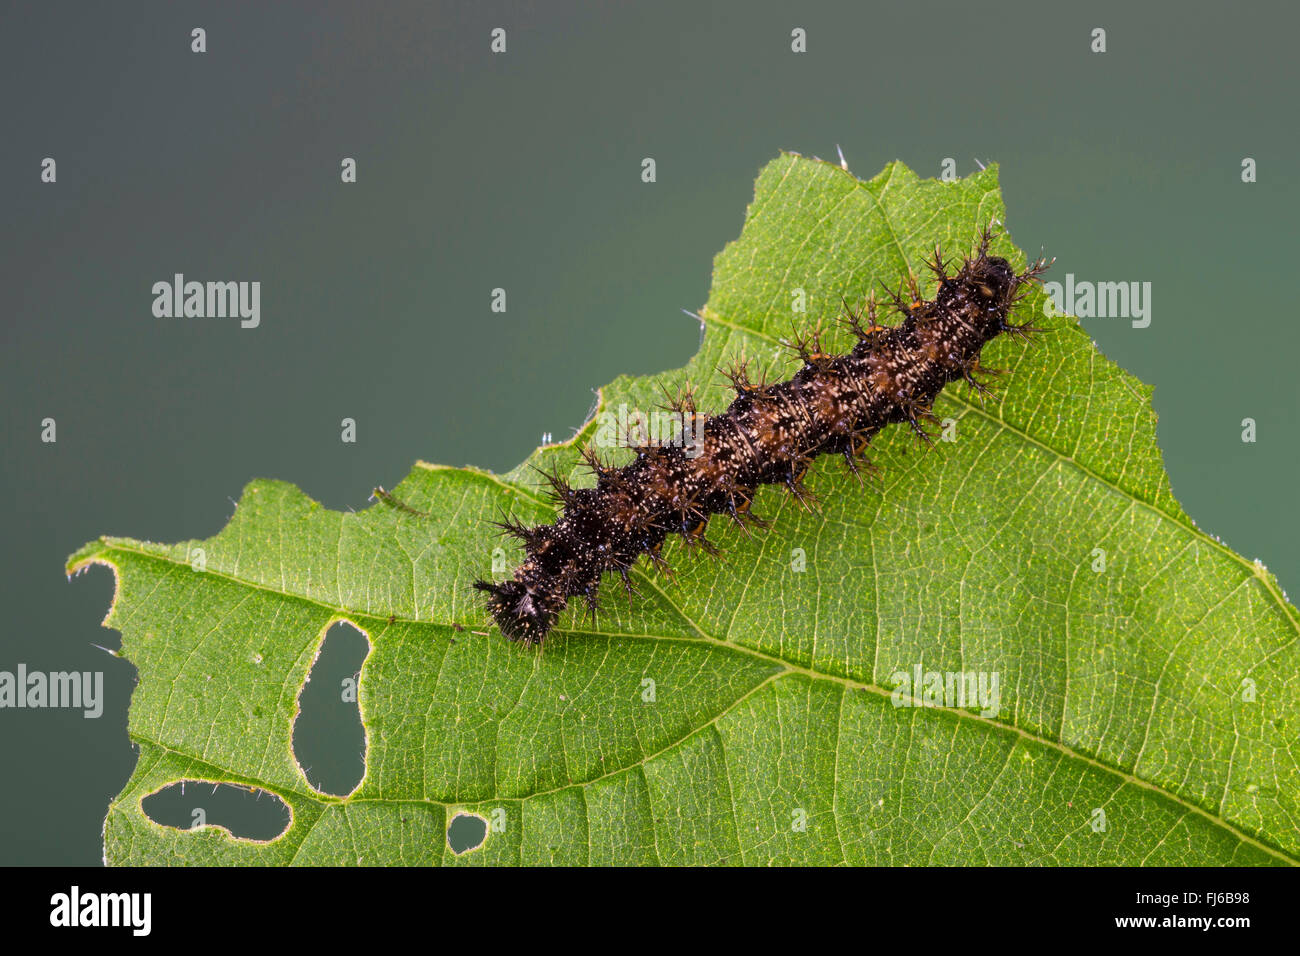 map butterfly (Araschnia levana), caterpillar on a nettle leaf, Germany - Stock Image